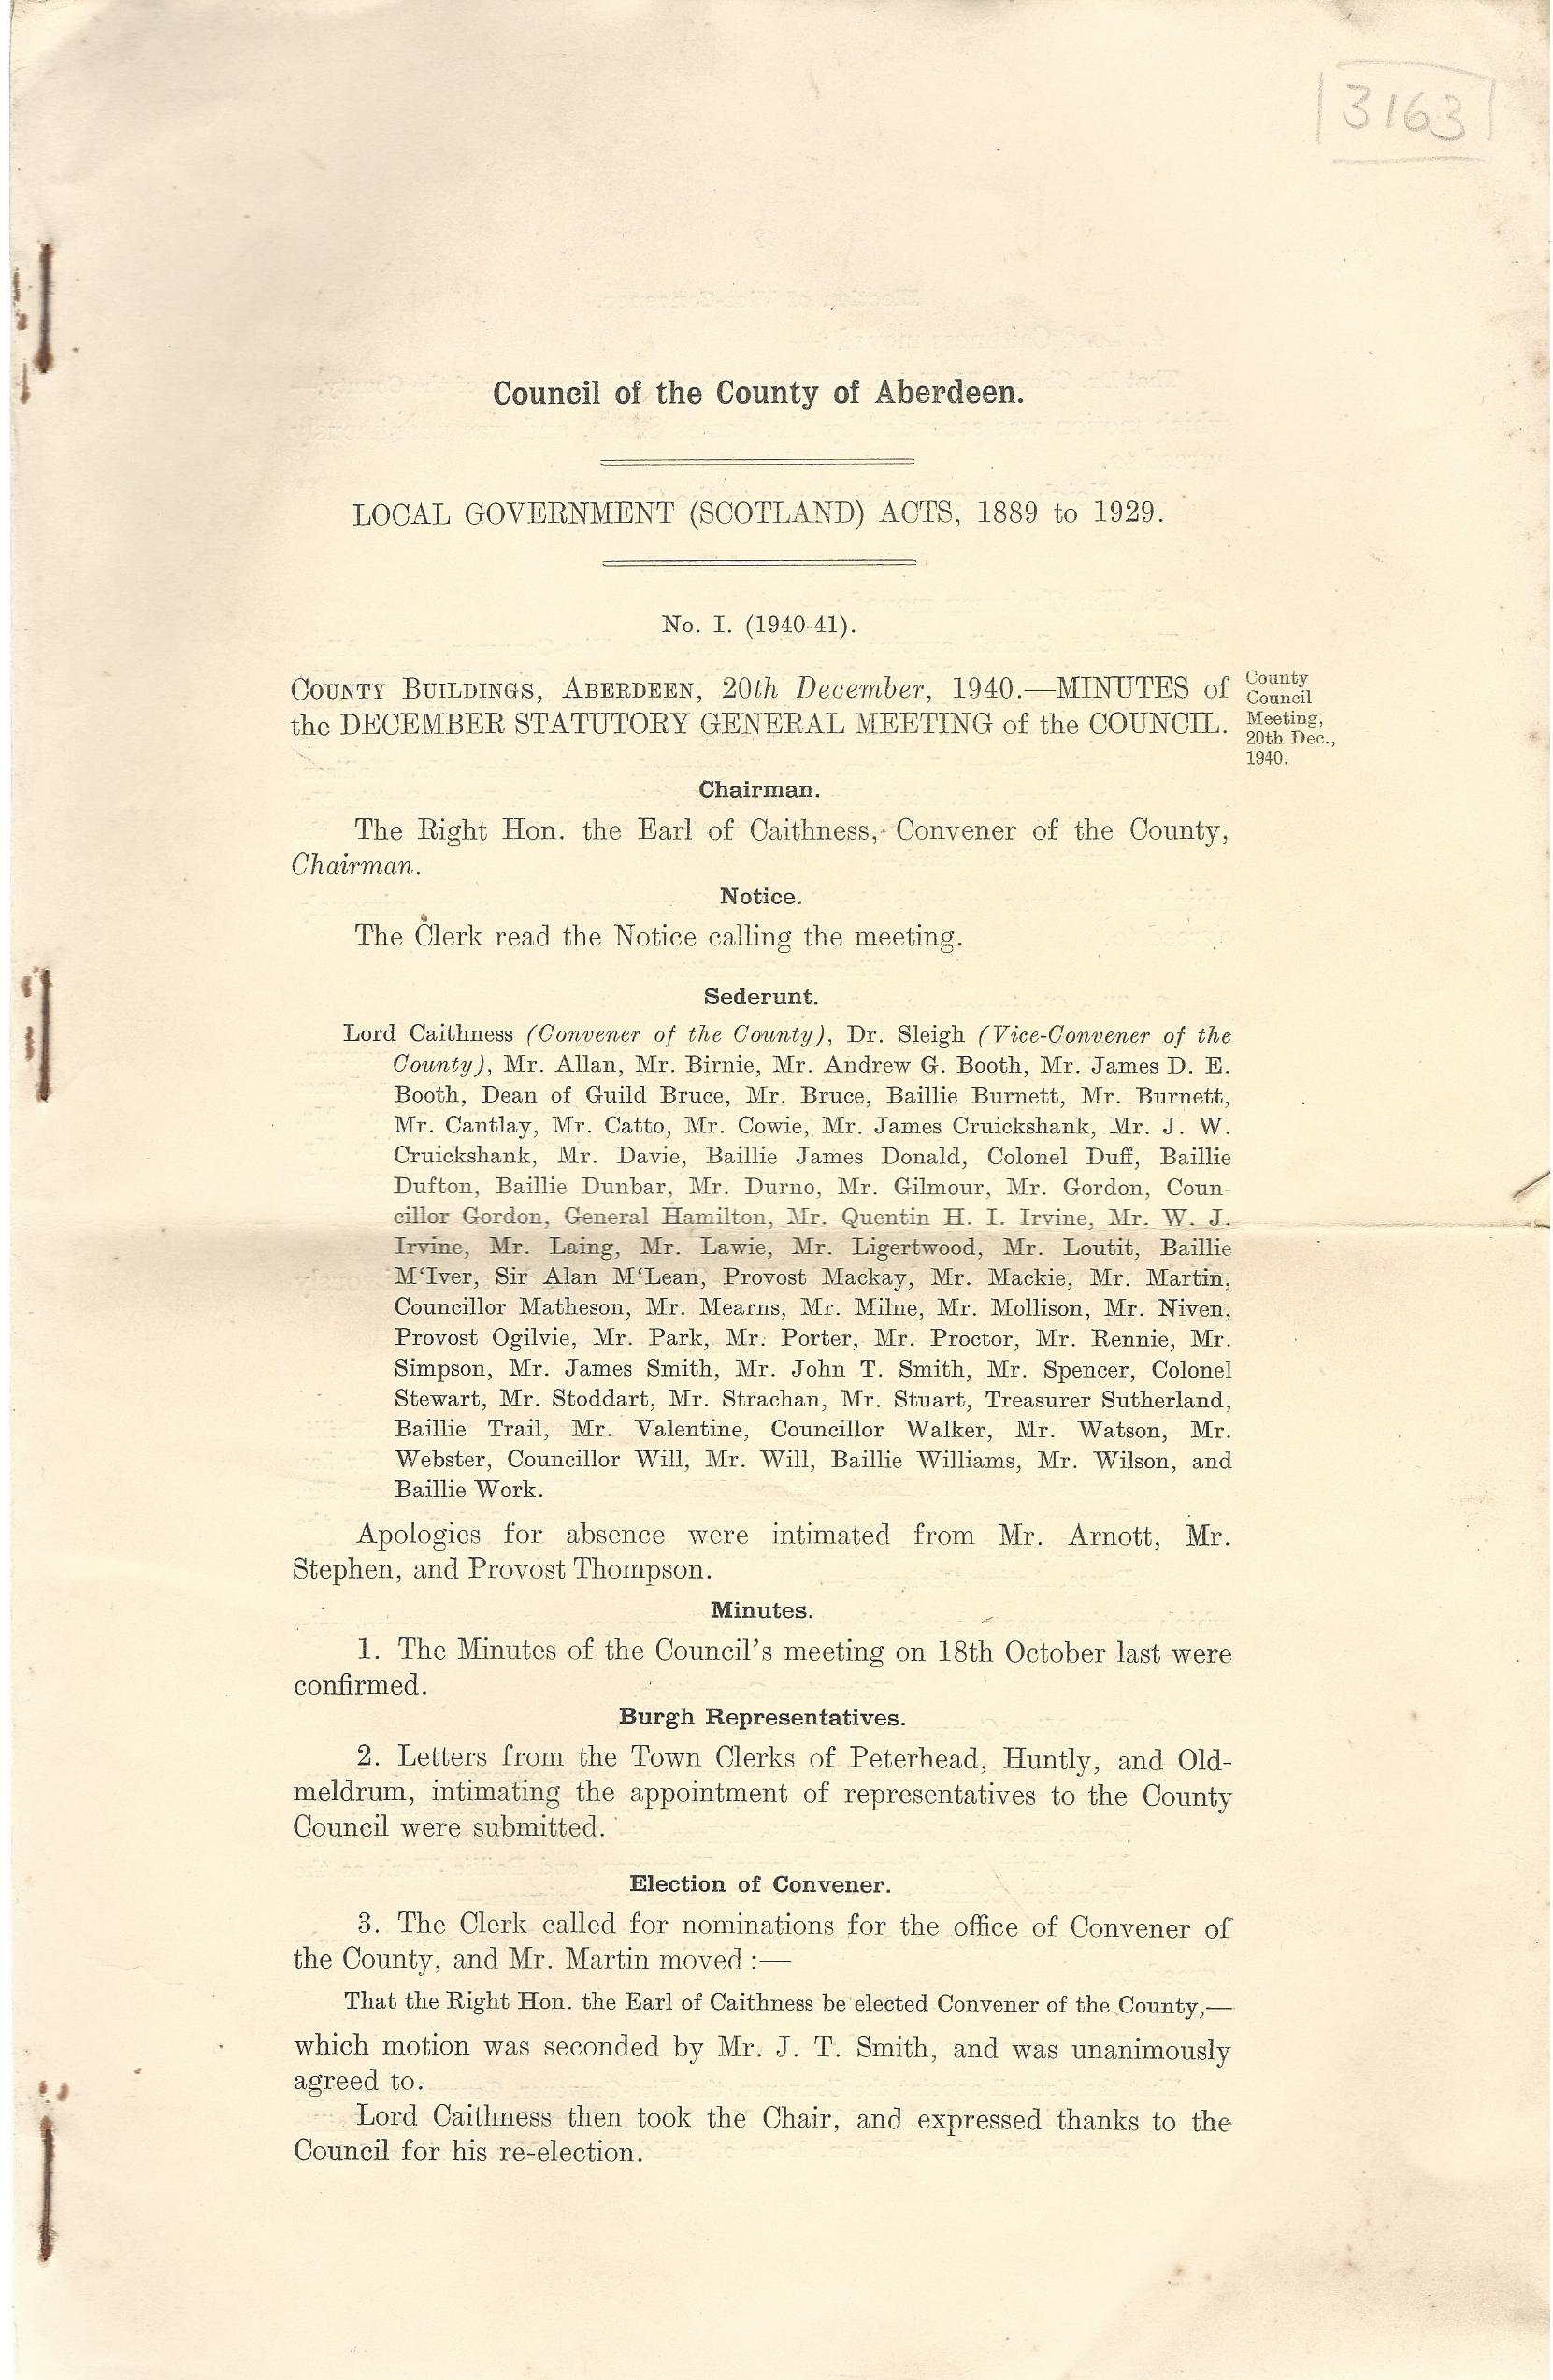 Image for Minutes of December Statutory General Meeting, 20th December, 1940, No.1 & 2.